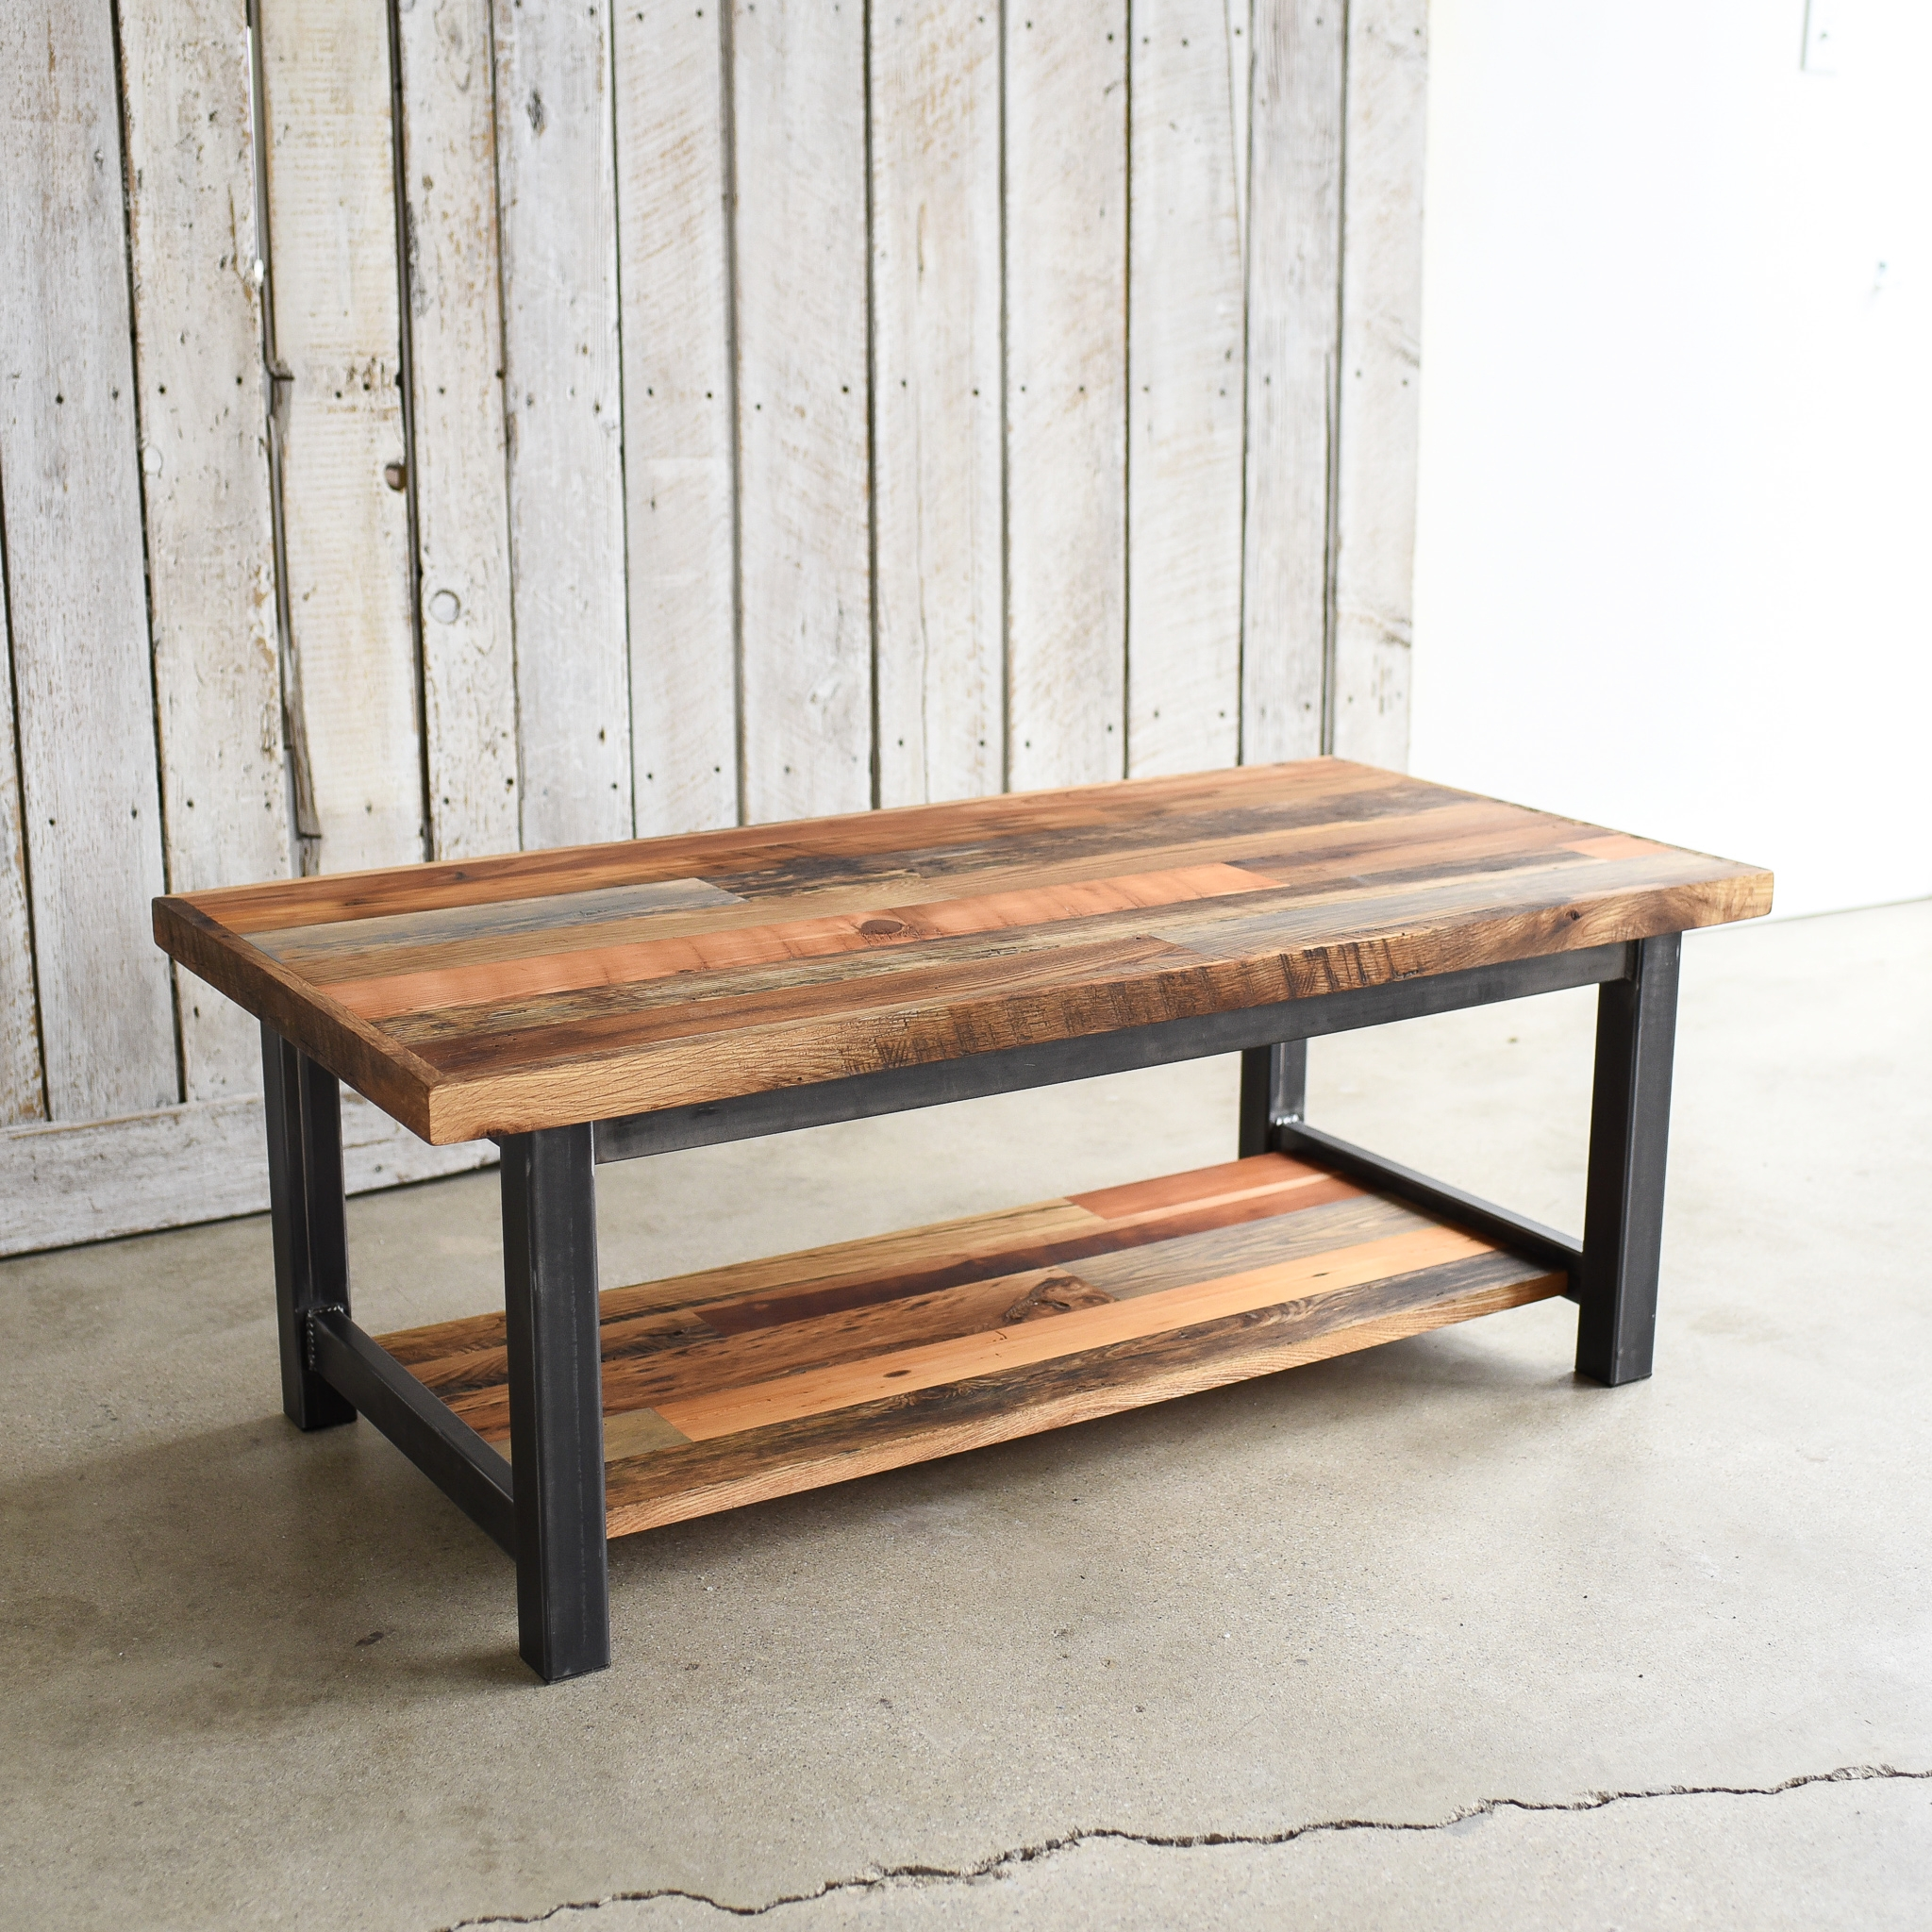 industrial reclaimed wood patchwork coffee table lower shelf what we make